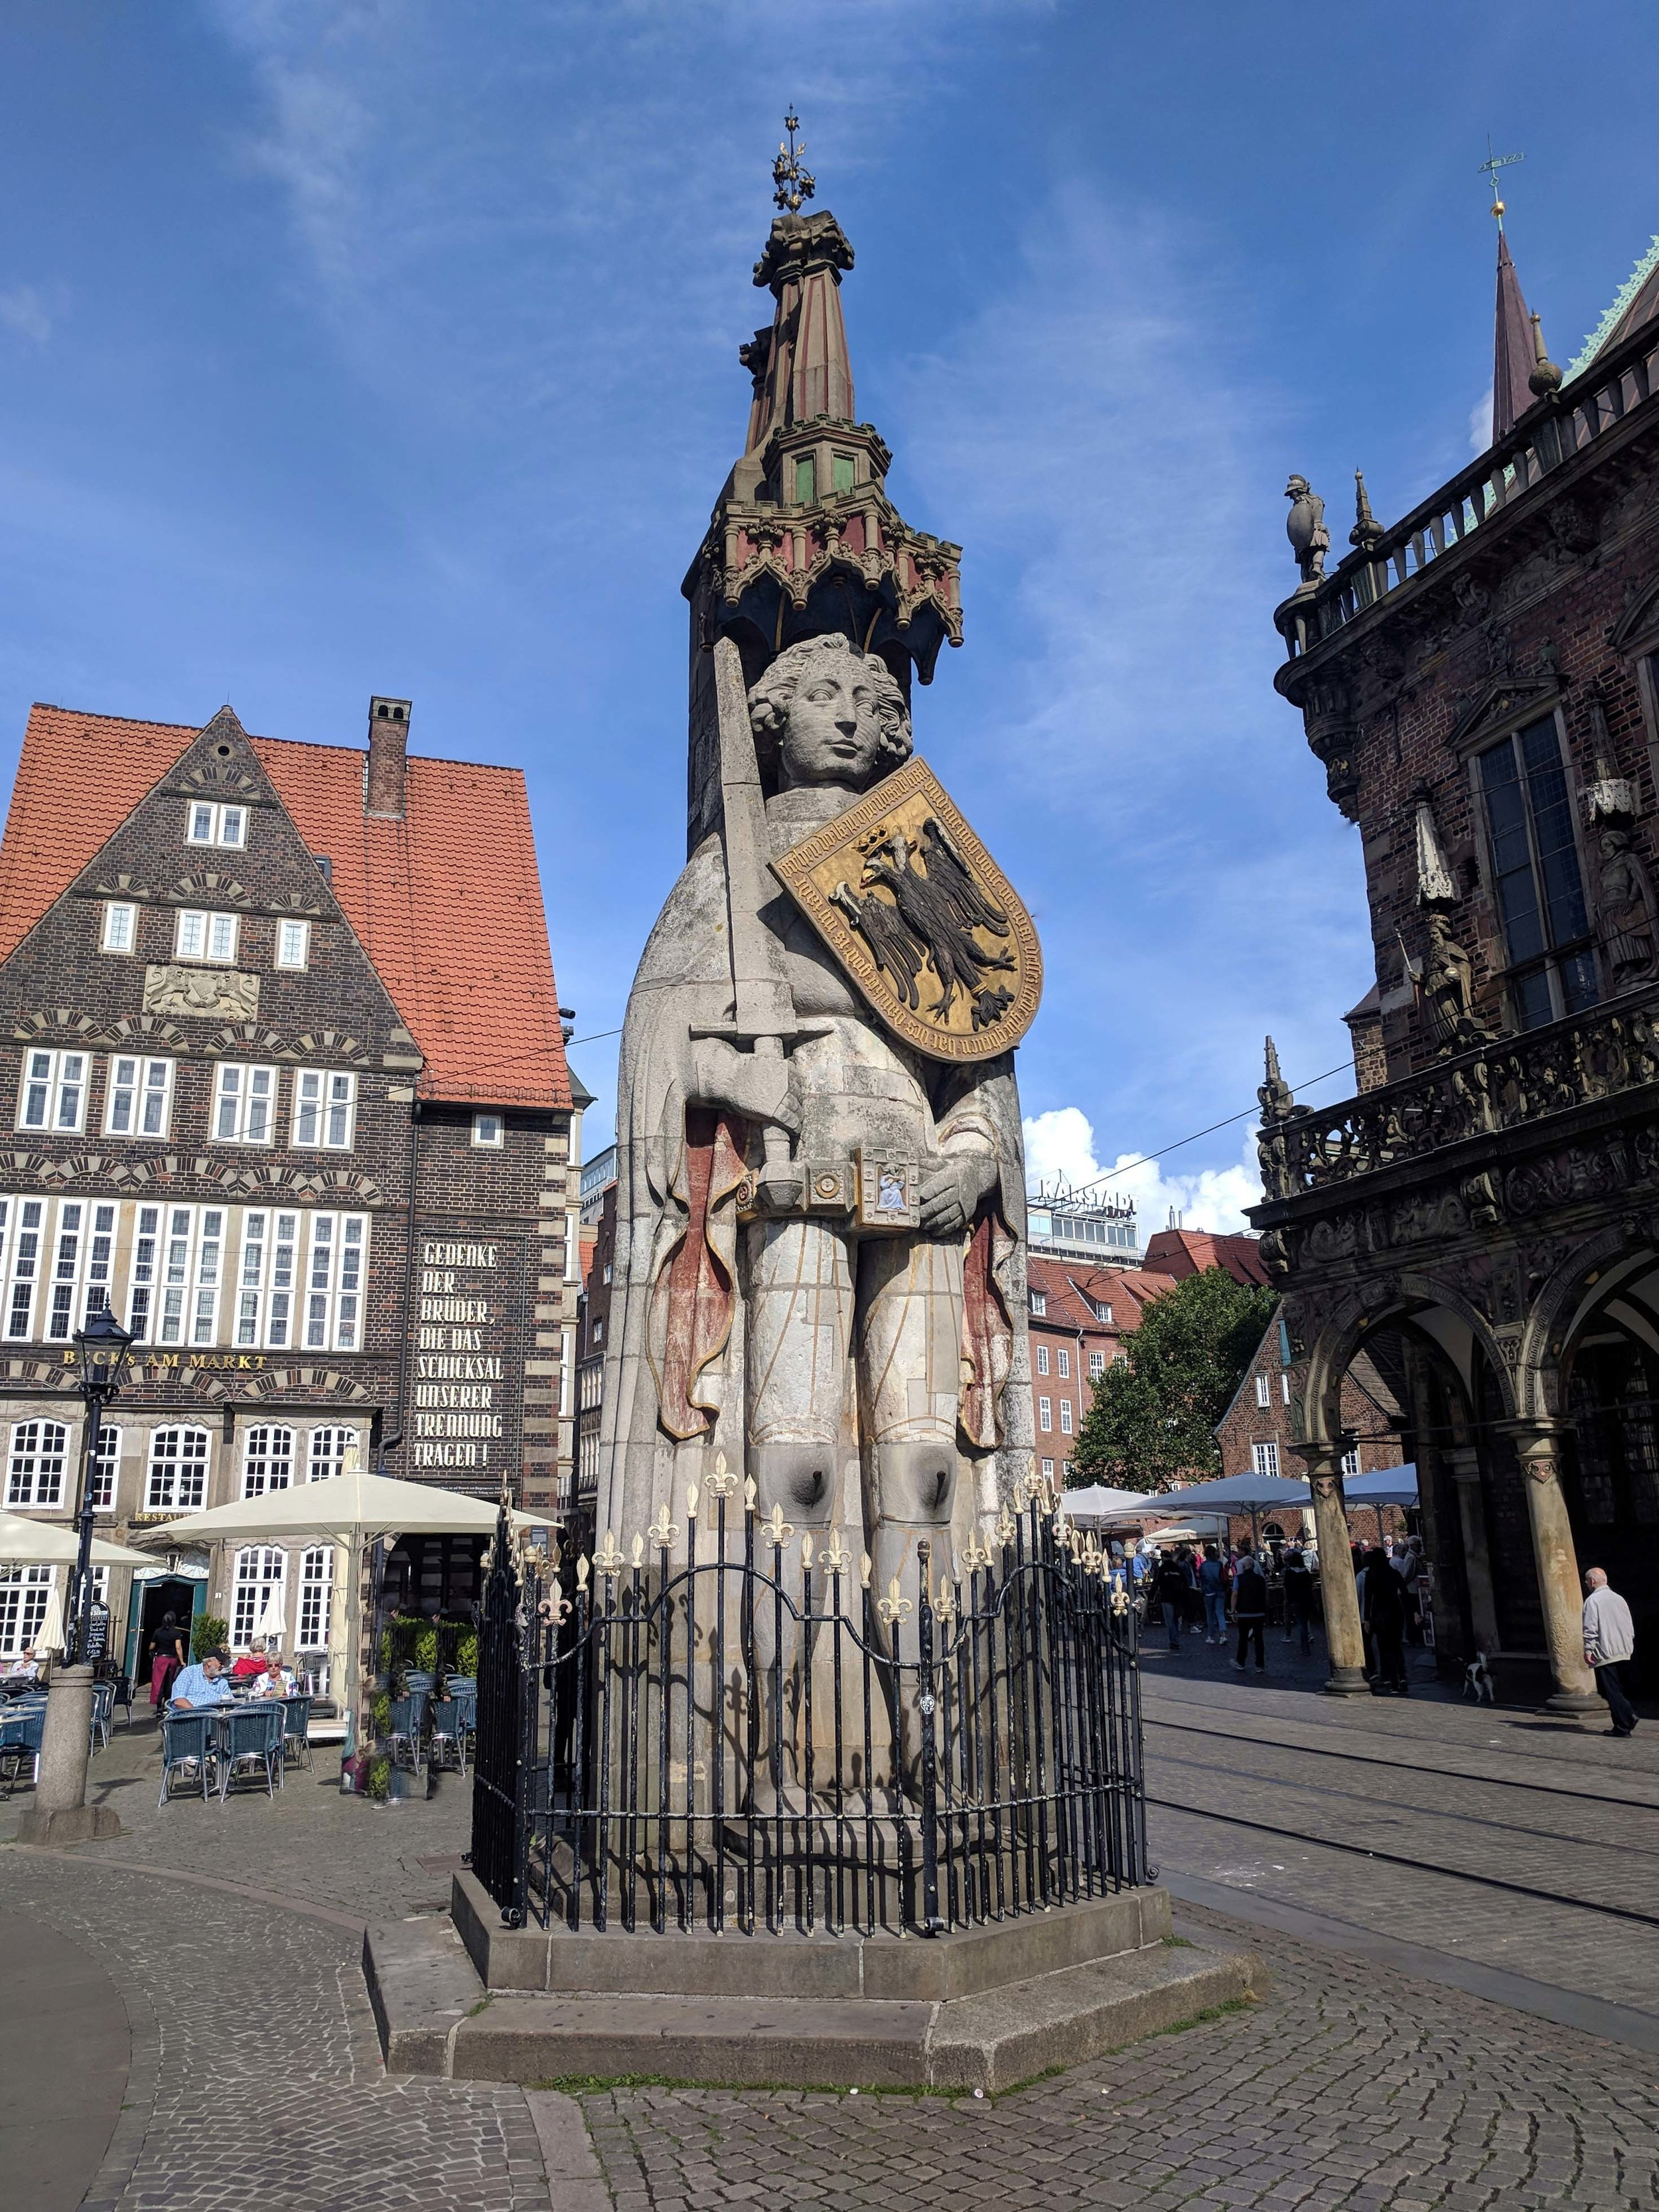 UNESCO listed Roland statue